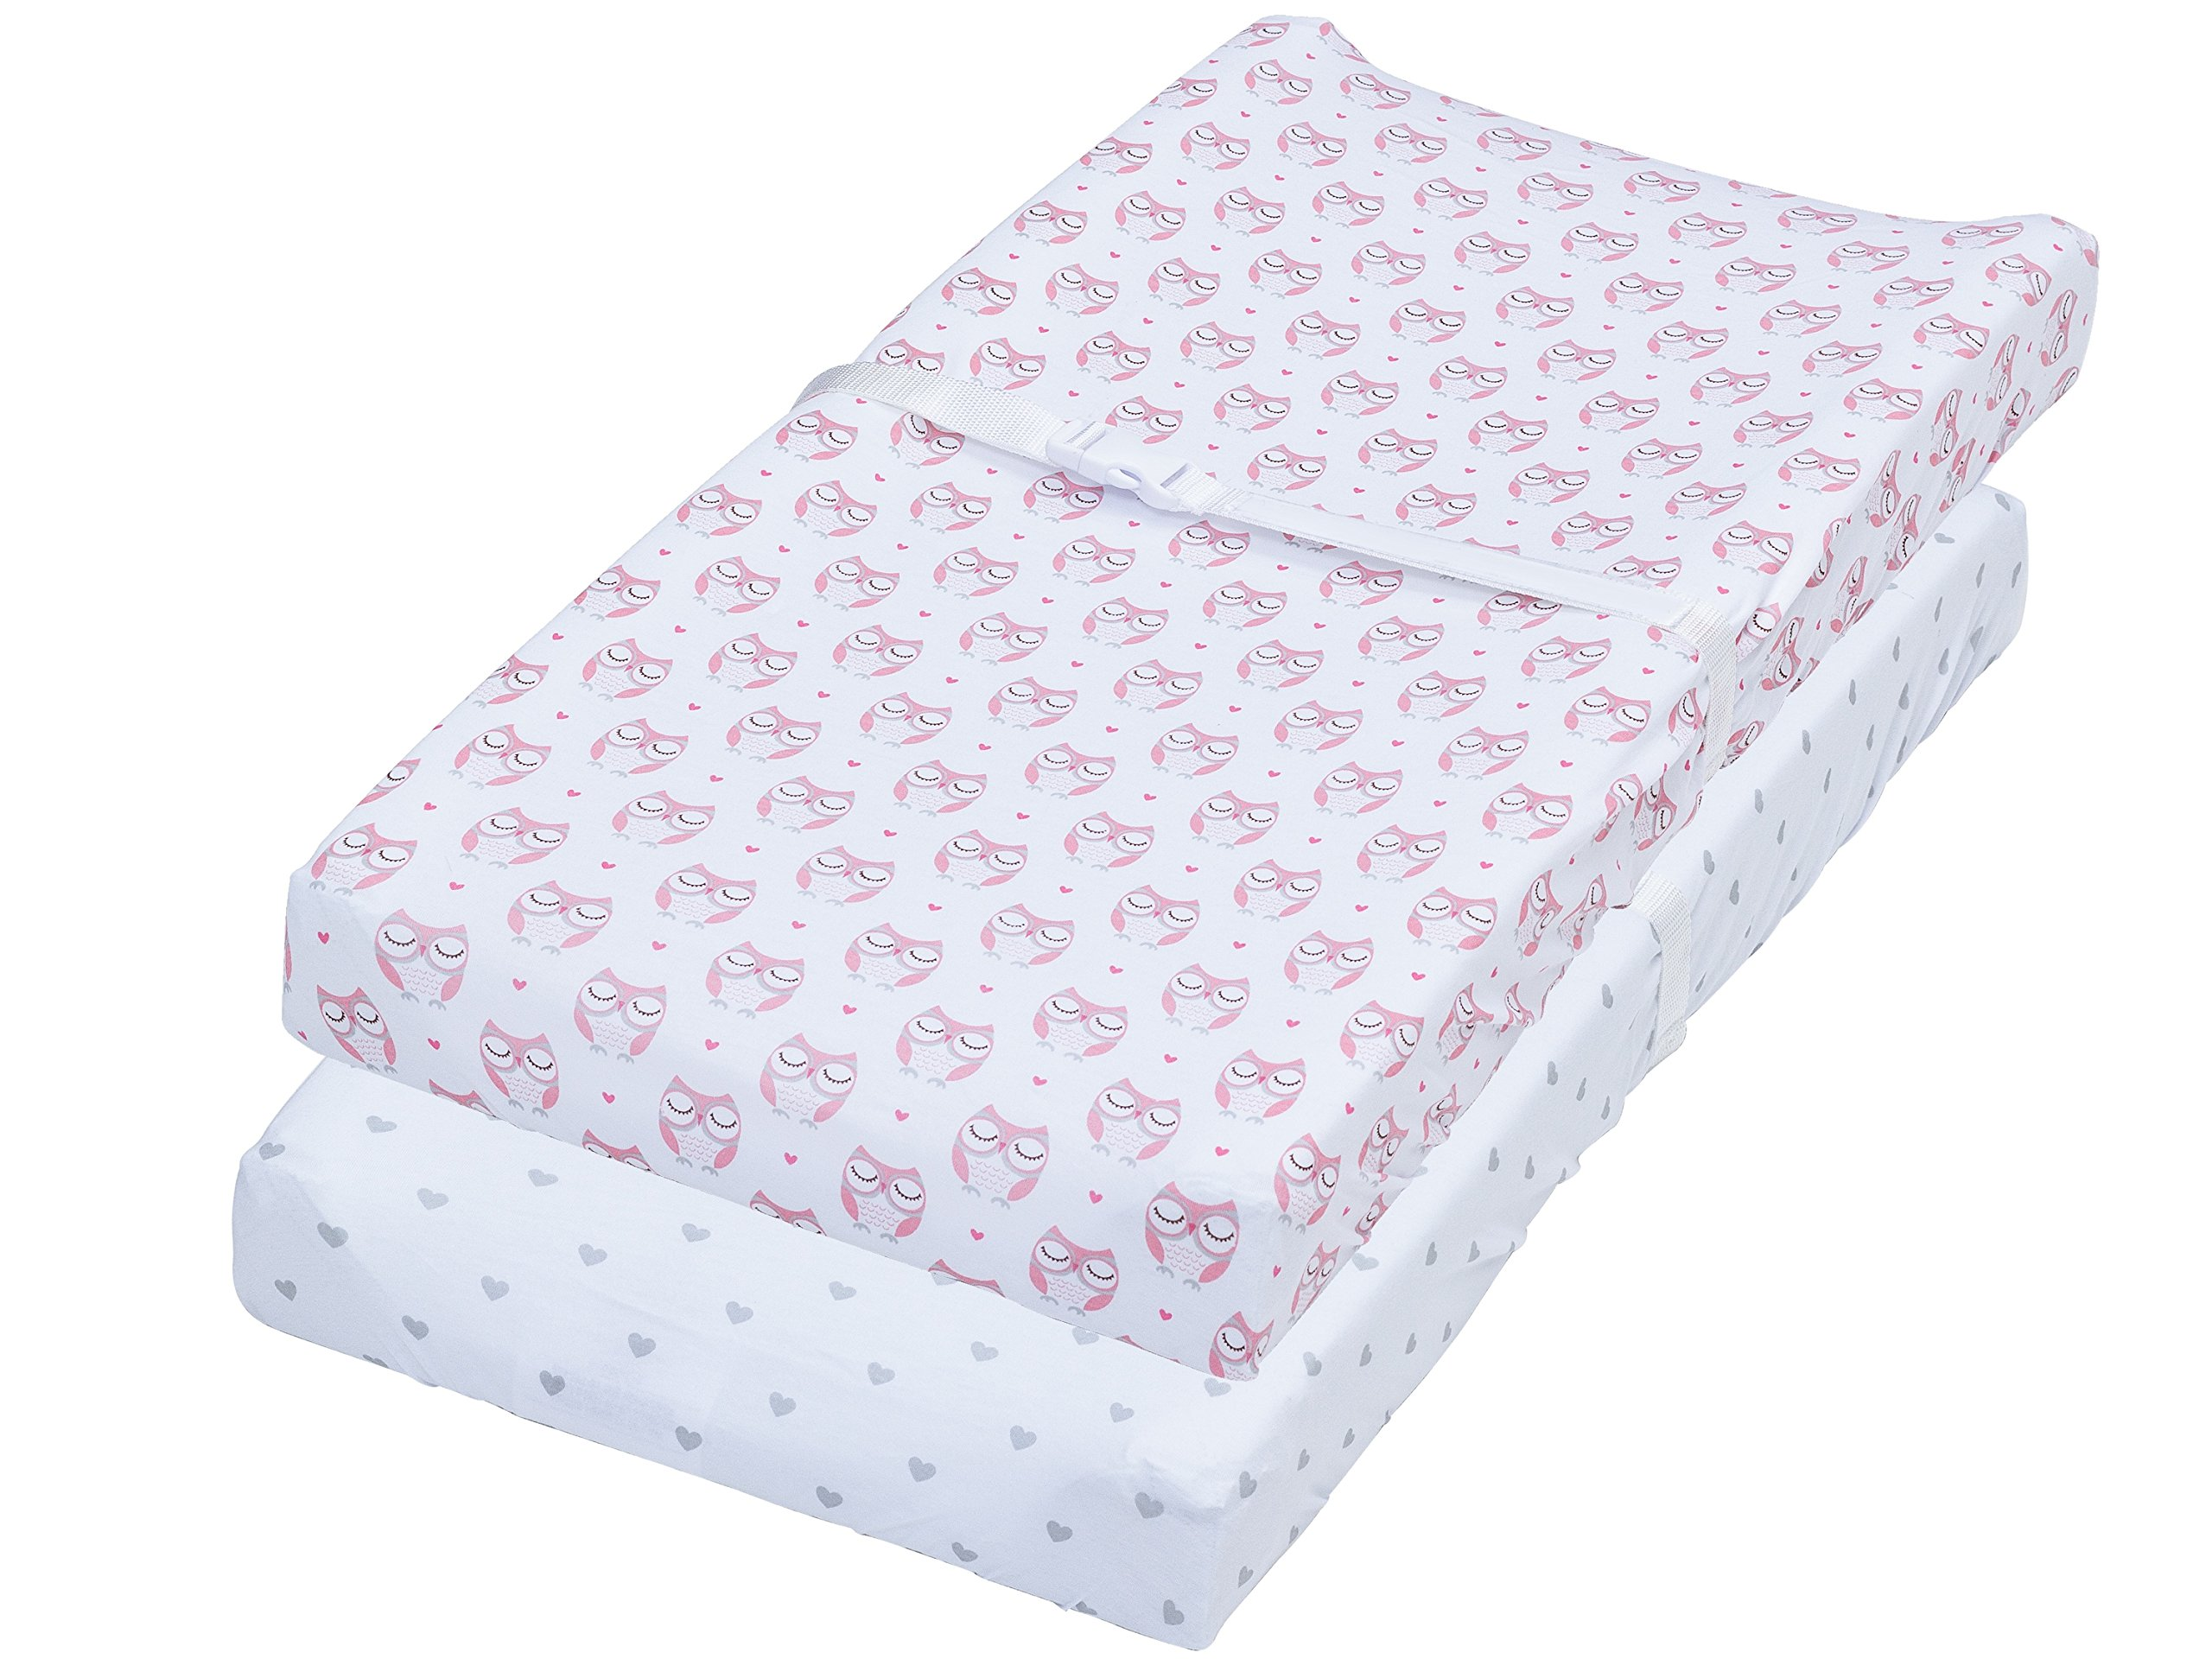 Changing Pad Cover, 2 Pack Pink Owls & Hearts Fitted Soft Jersey Cotton Bedding